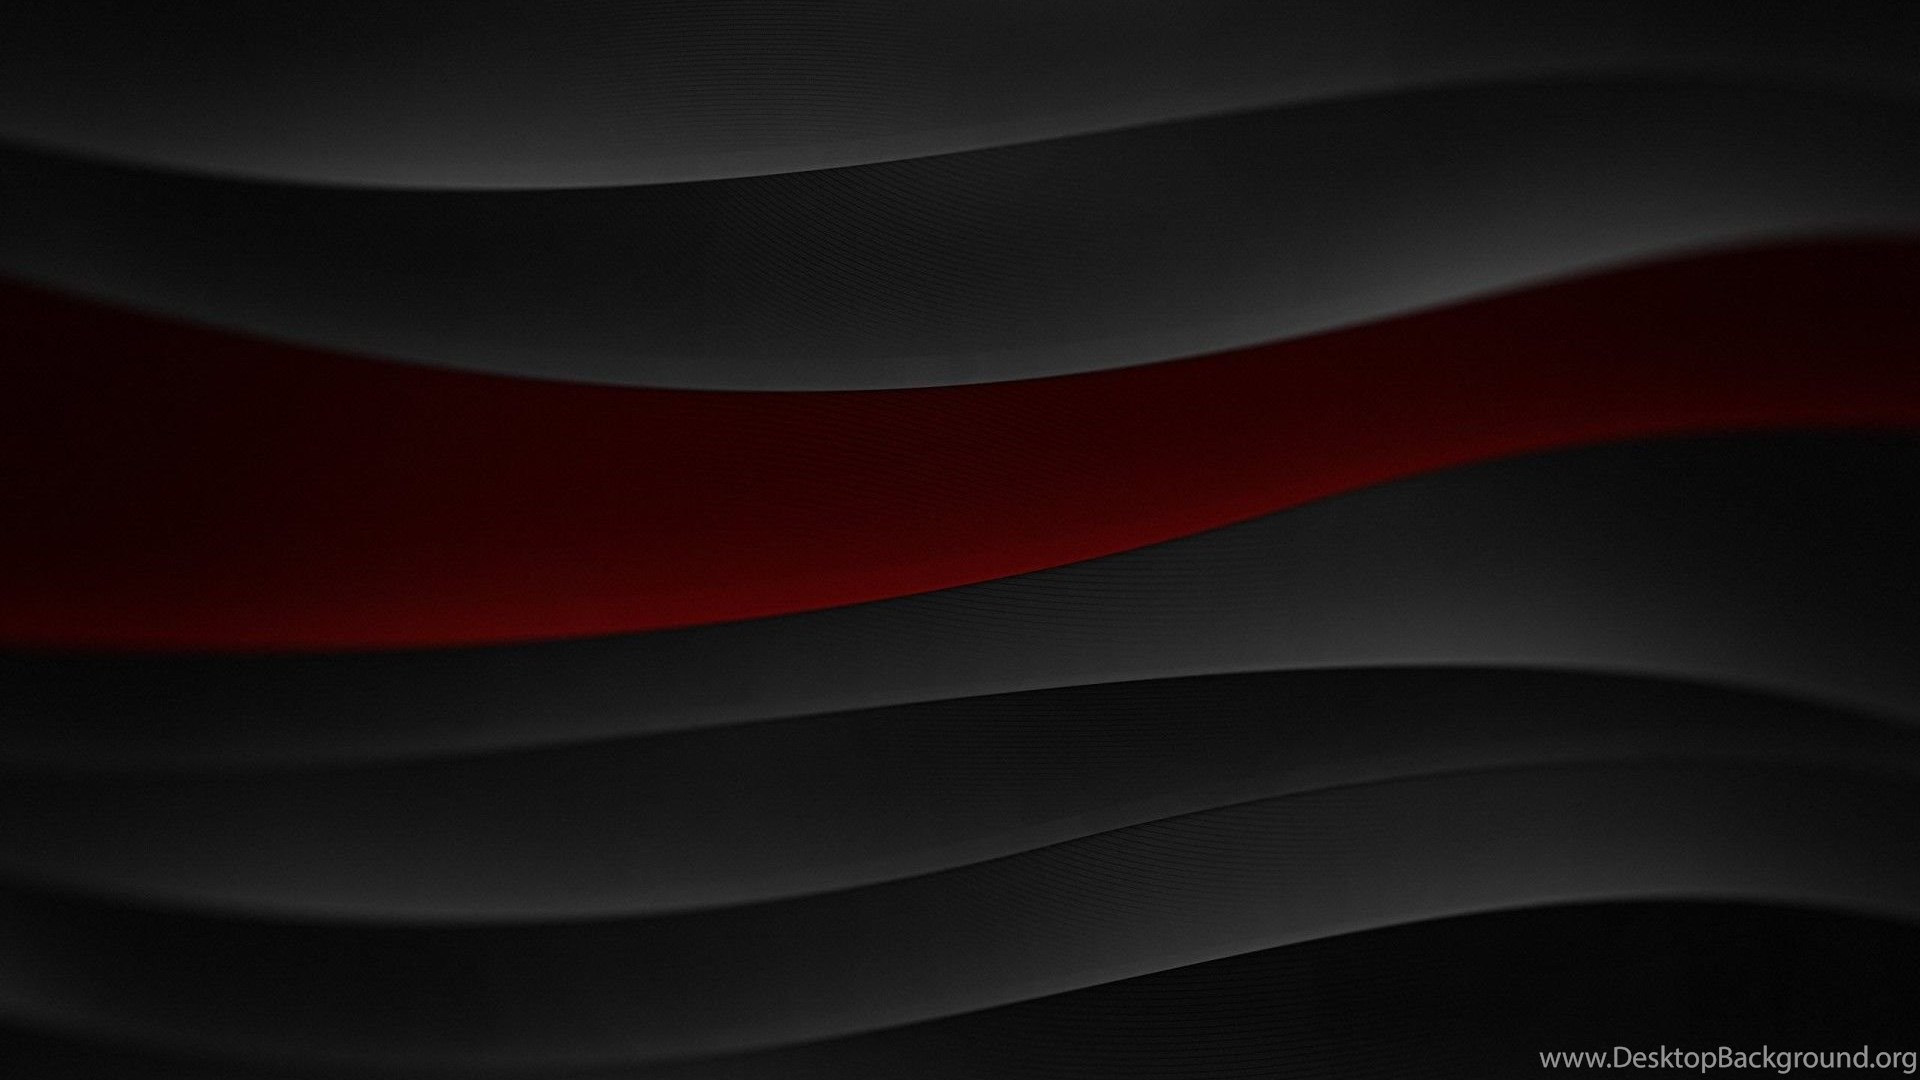 Red And Black Abstract Wallpapers Hd Wallpapers Lovely Desktop